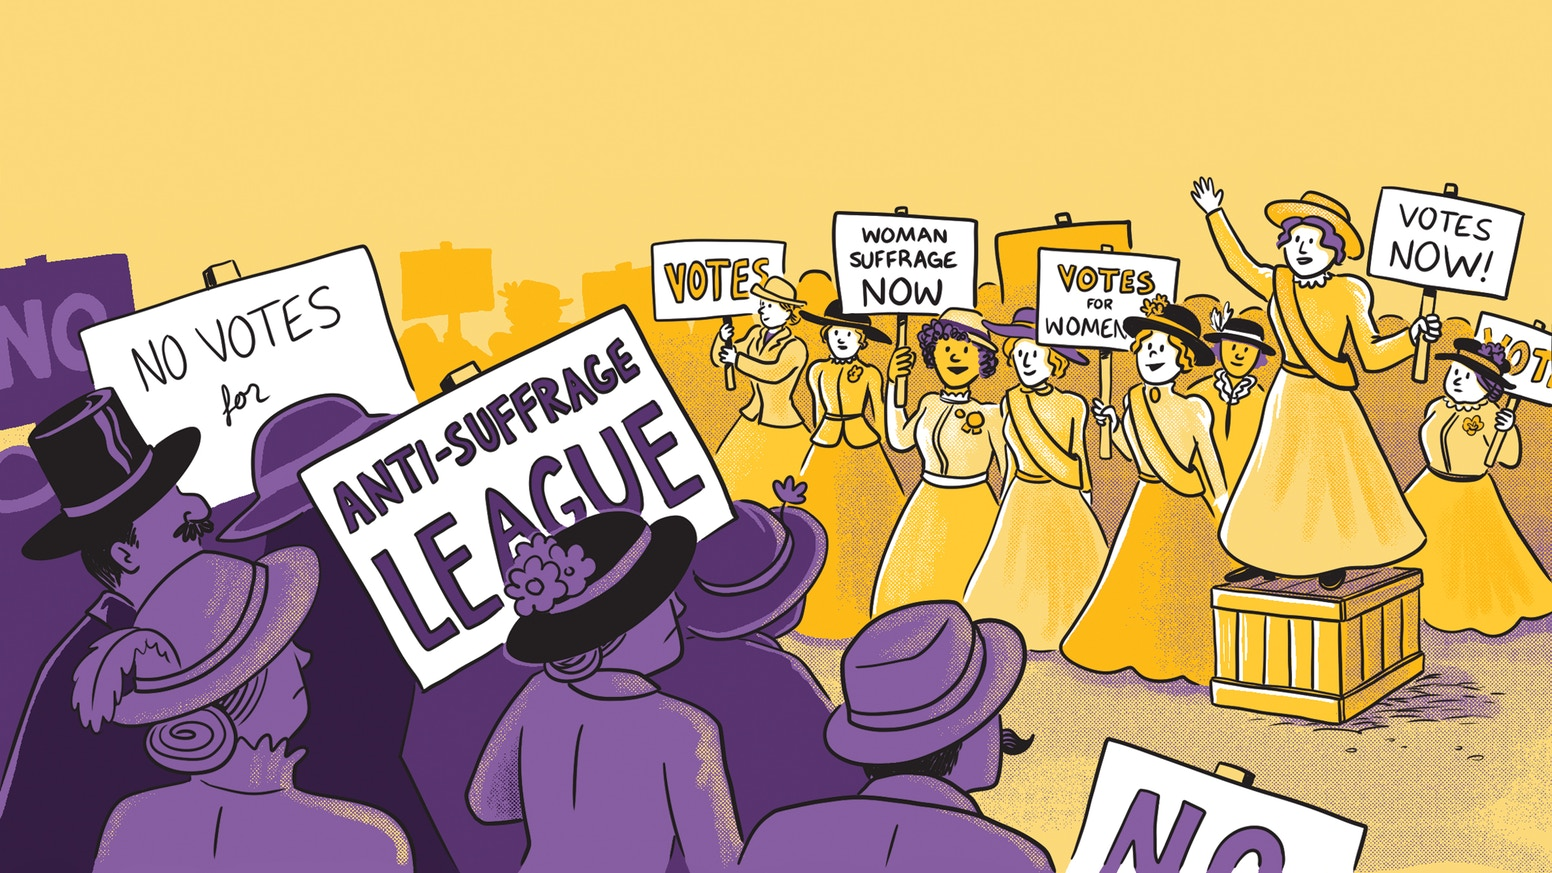 200+ pages of comics and art, created by womxn, exploring the people and narratives that led to women's suffrage.